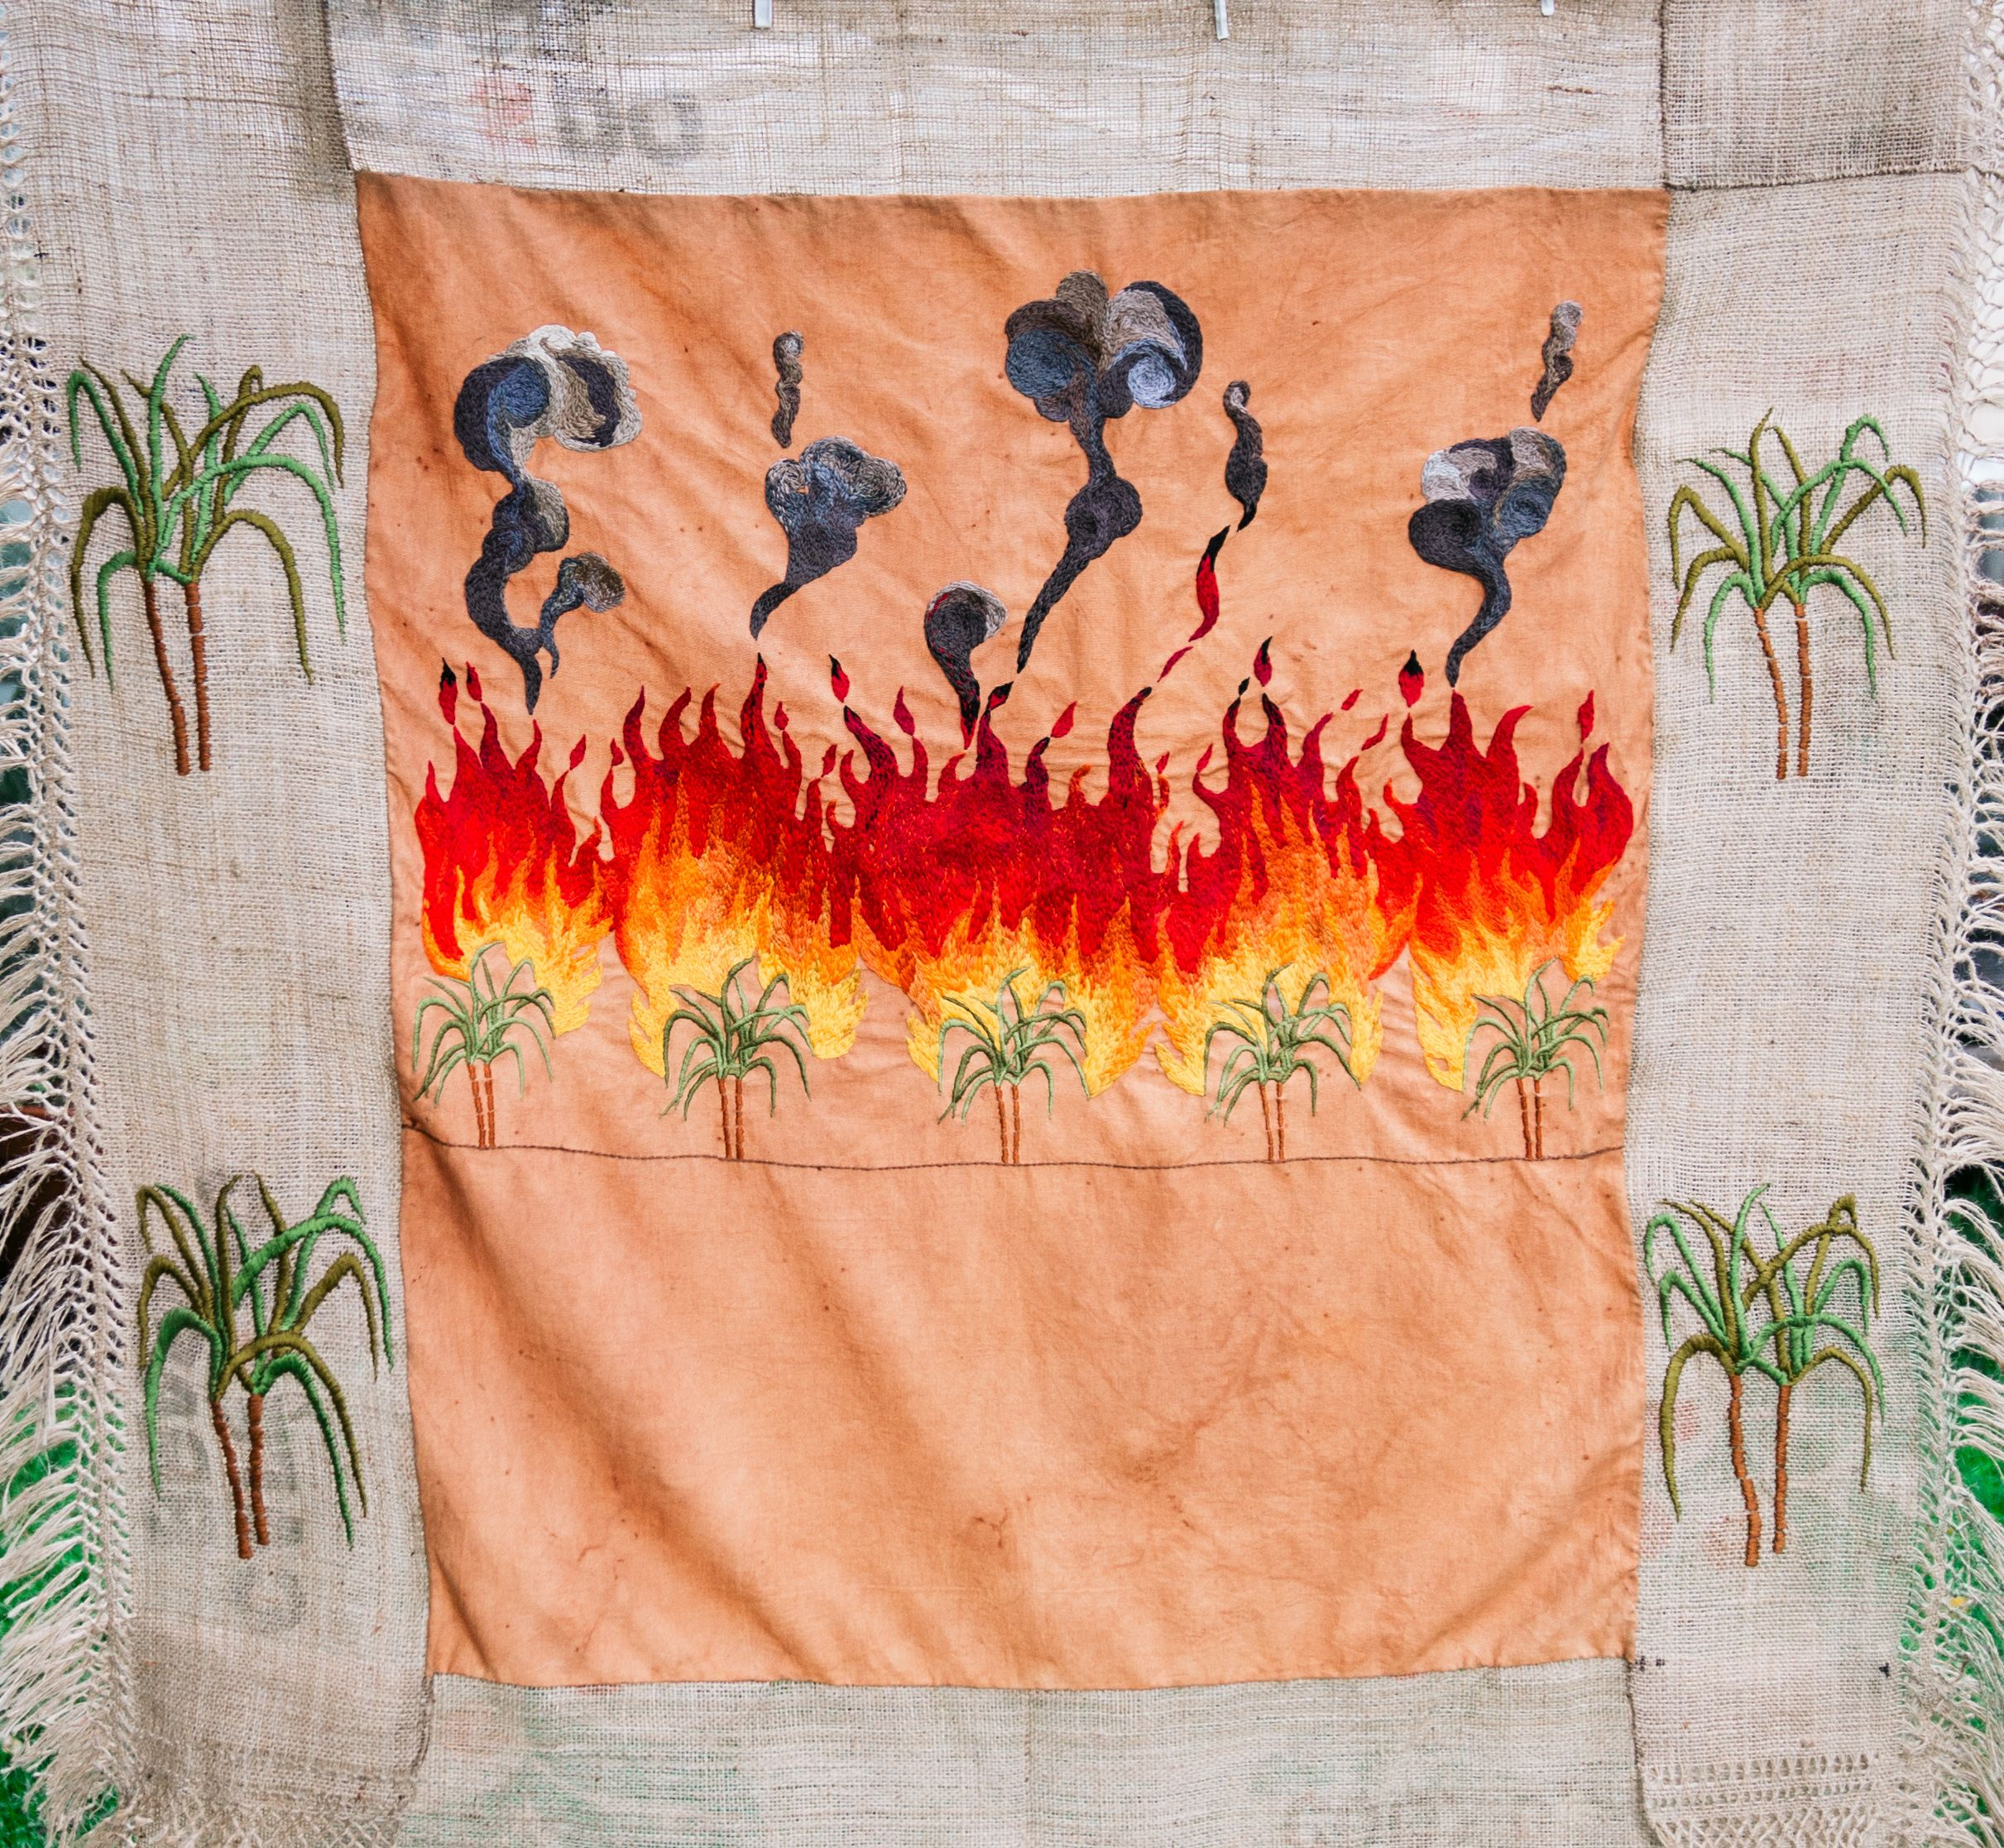 Quishile Charan, Burning Ganna Khet (Burning Sugarcane Farm), 2021, 153cm by 152cm. Technique: hand dyed textile, embroidery thread, cotton, hessian sacks. Textile is naturally dyed with avocado seeds. Image by Matavai Taulangau